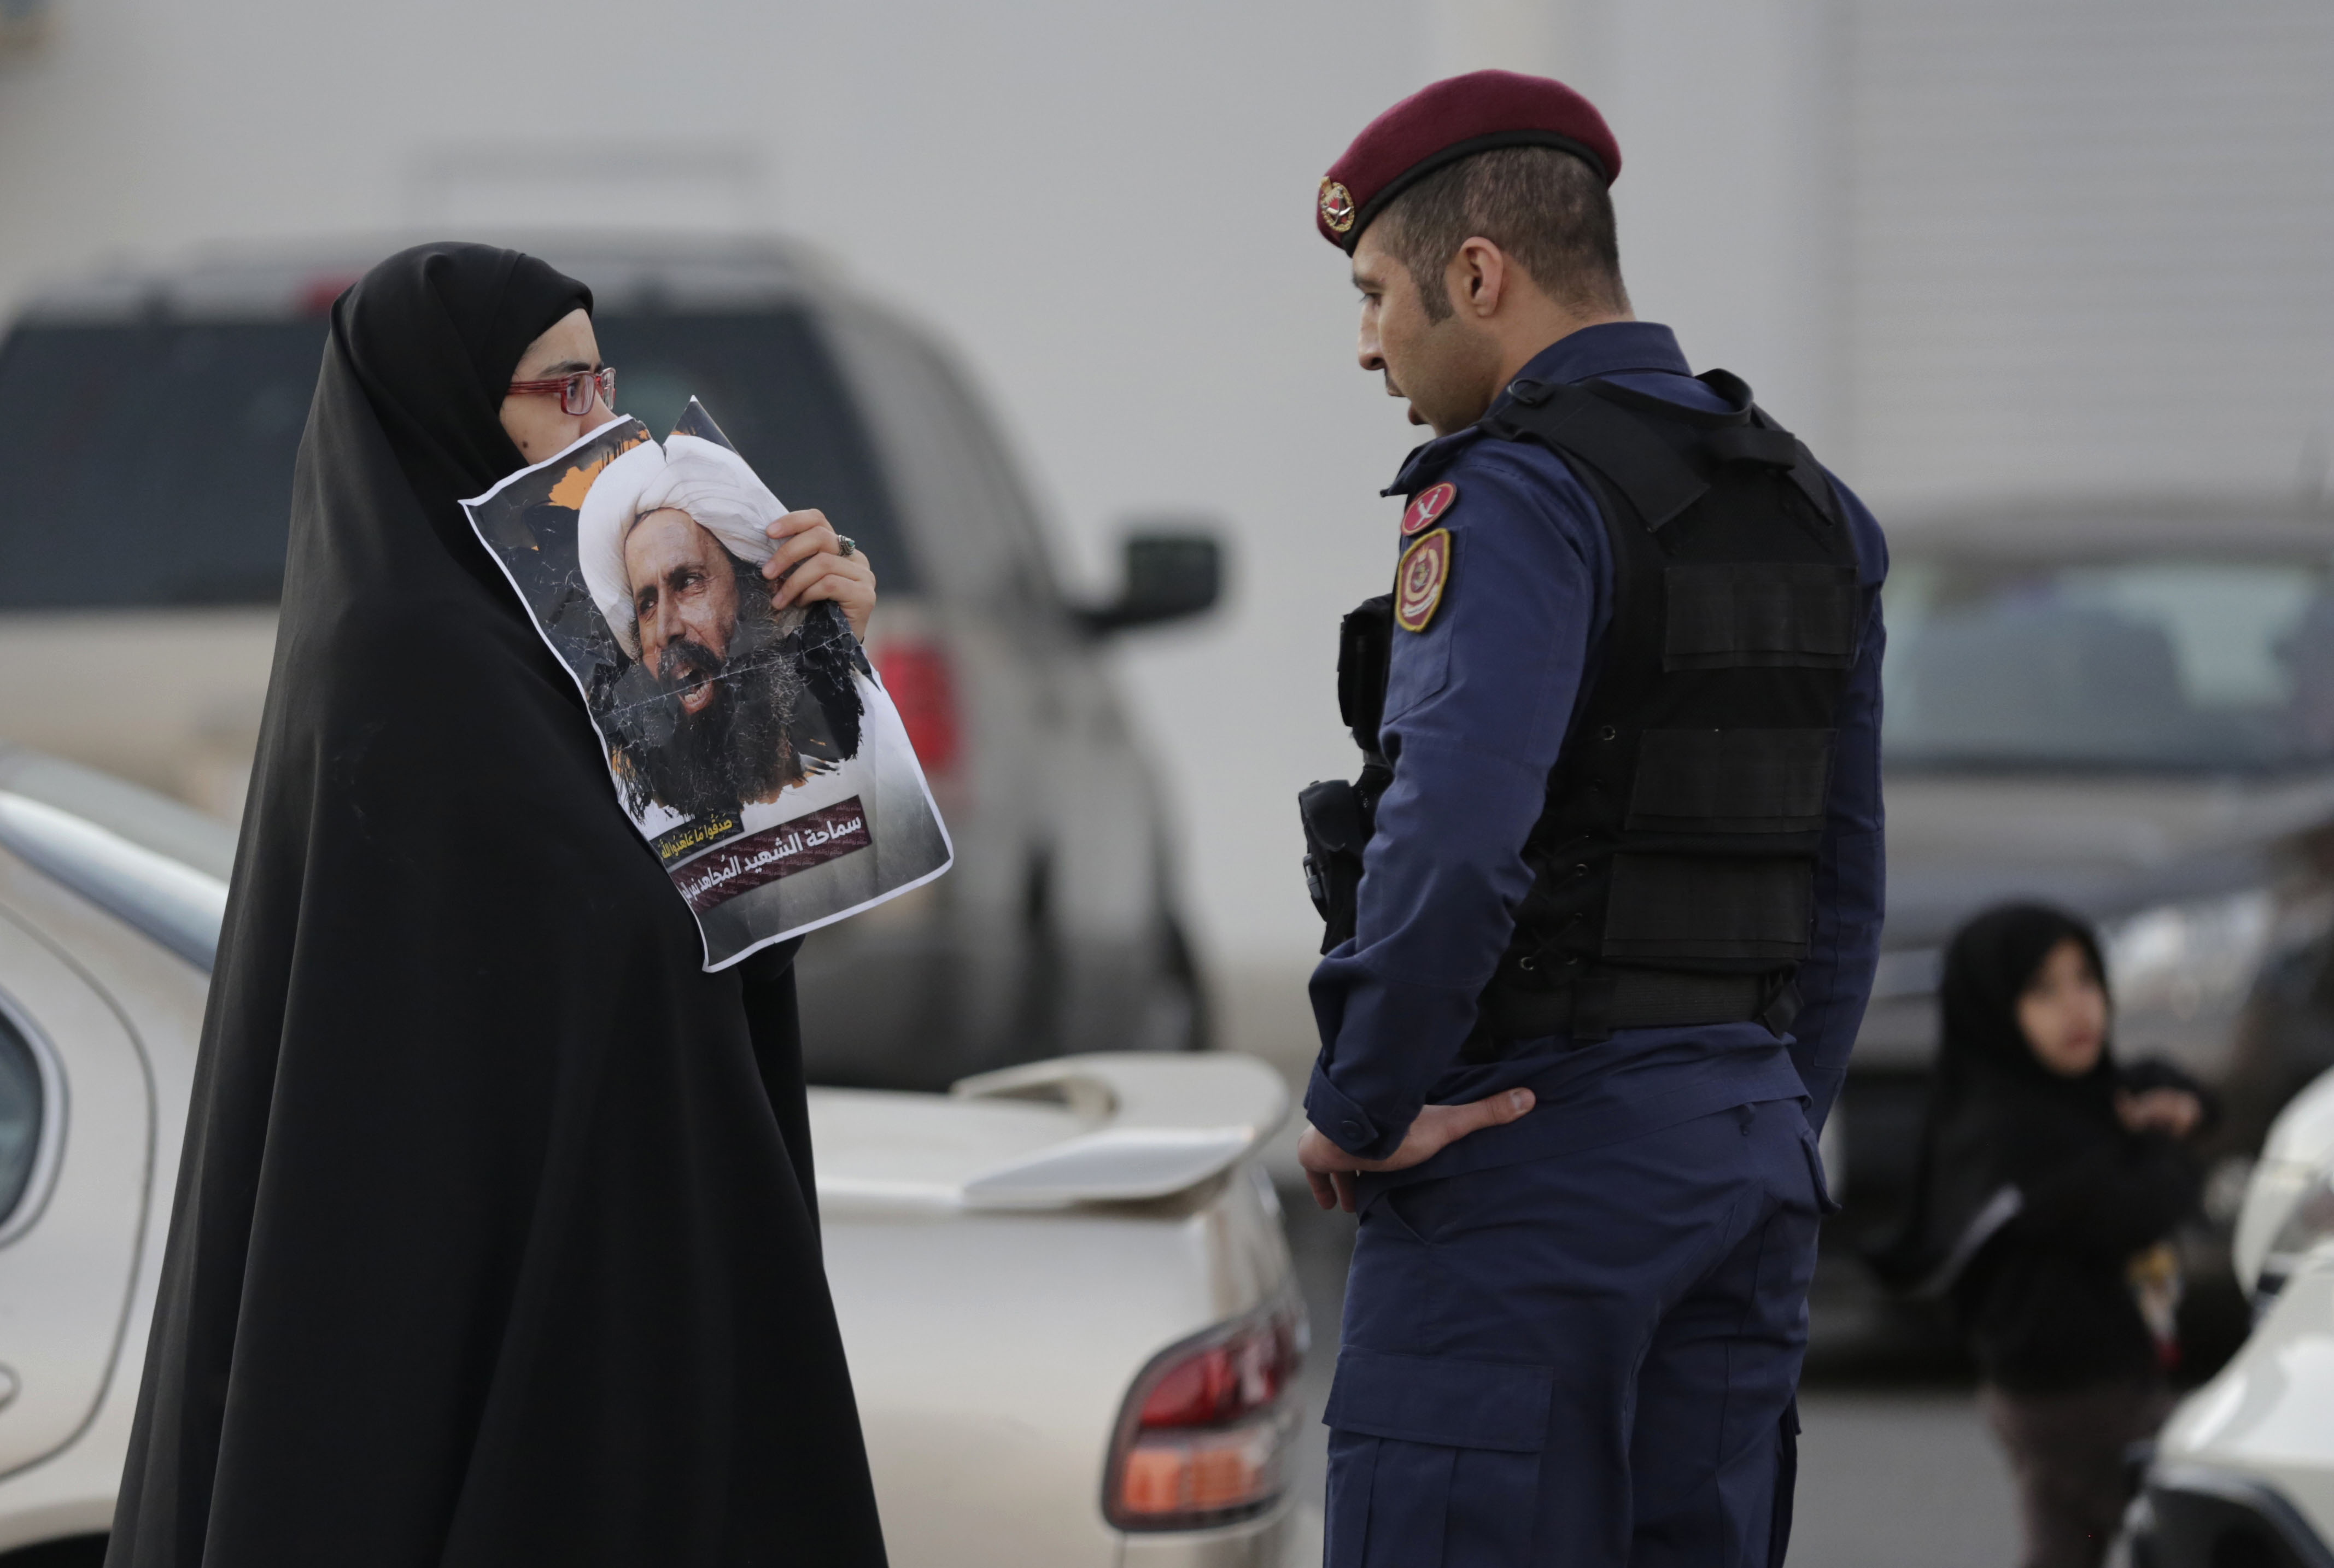 A Bahraini protester holds up a picture of Saudi Shi'ite cleric Sheikh Nimr al-Nimr in front of a riot police officer in Daih, Bahrain, a largely Shi'ite suburb of the capital, Jan. 4, 2016.